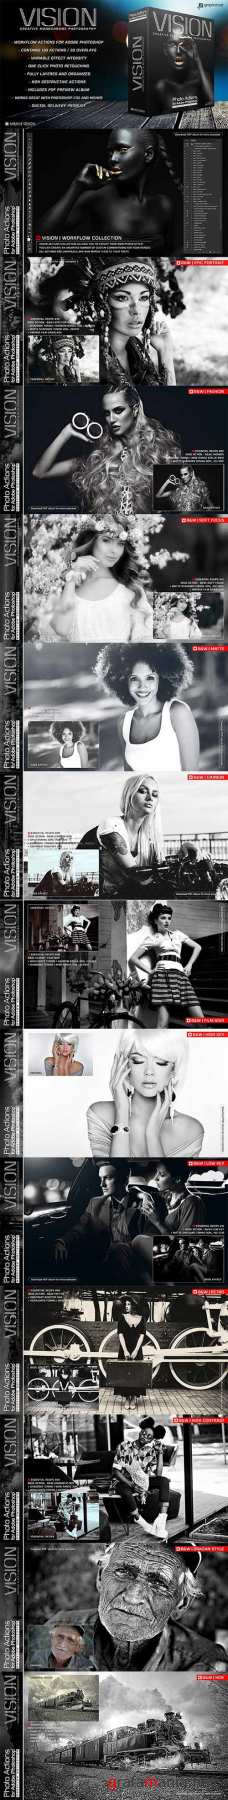 GraphicRiver - Actions for Photoshop Vision 22720644